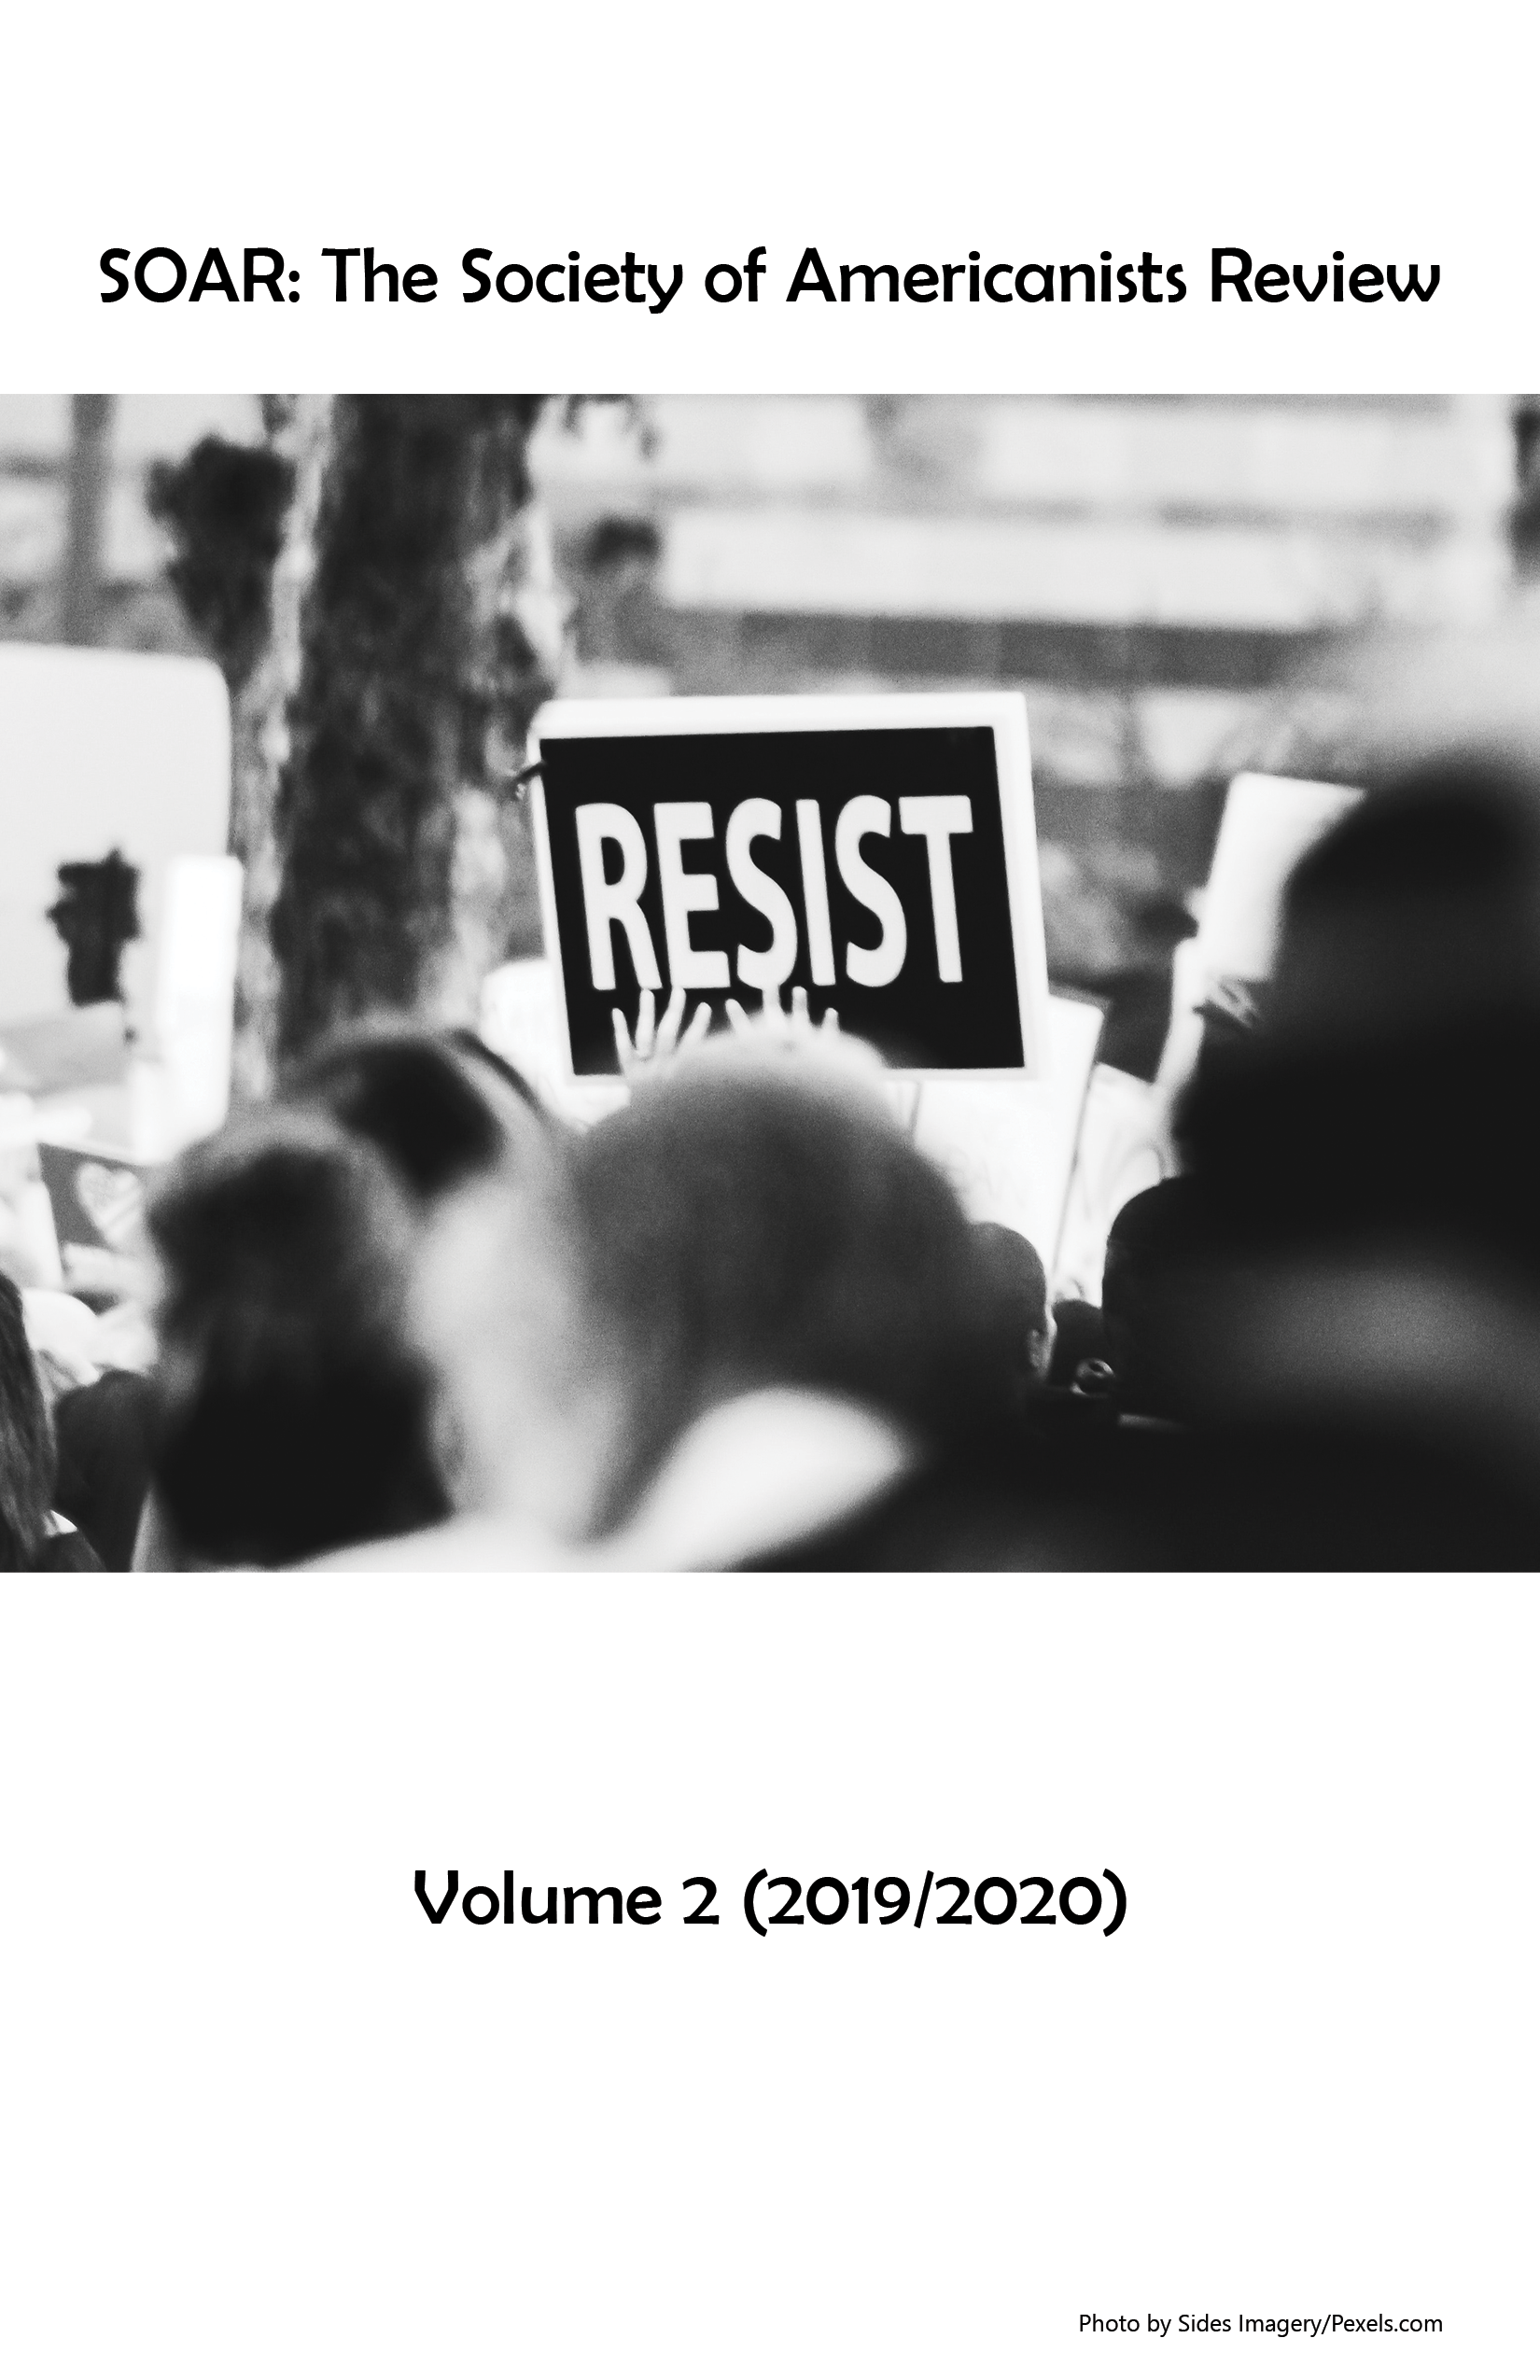 View Vol 2 (2019-2020): The Resistance